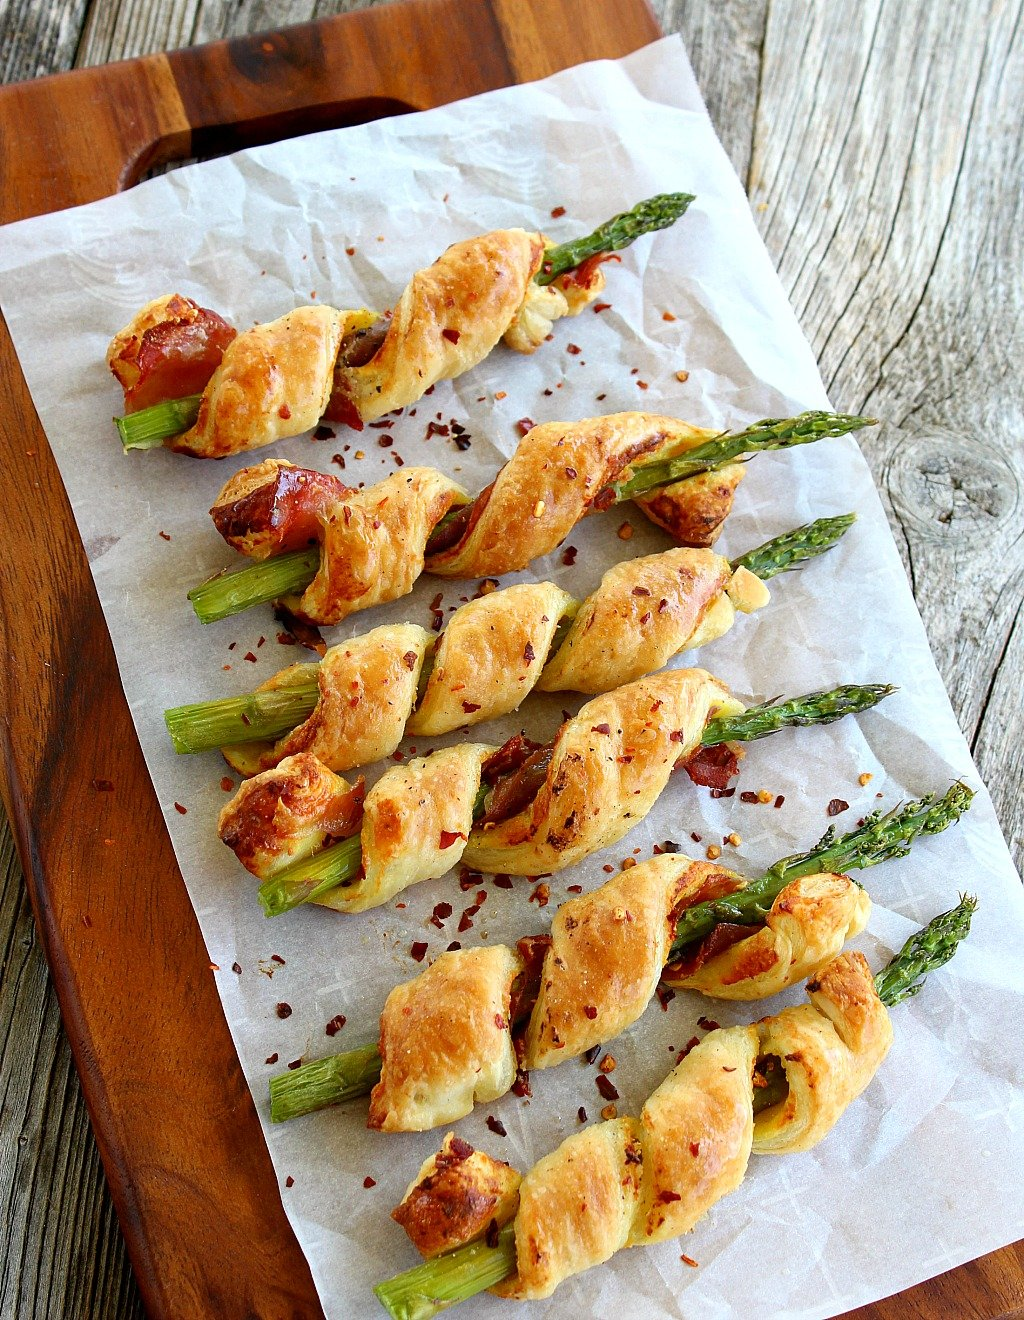 Asparagus, Dijon, Parmesan, and prosciutto, wrapped in puff pastry. Perfect appetizer or fancy side dish; Sprigs in a Blanket are tasty but super easy.